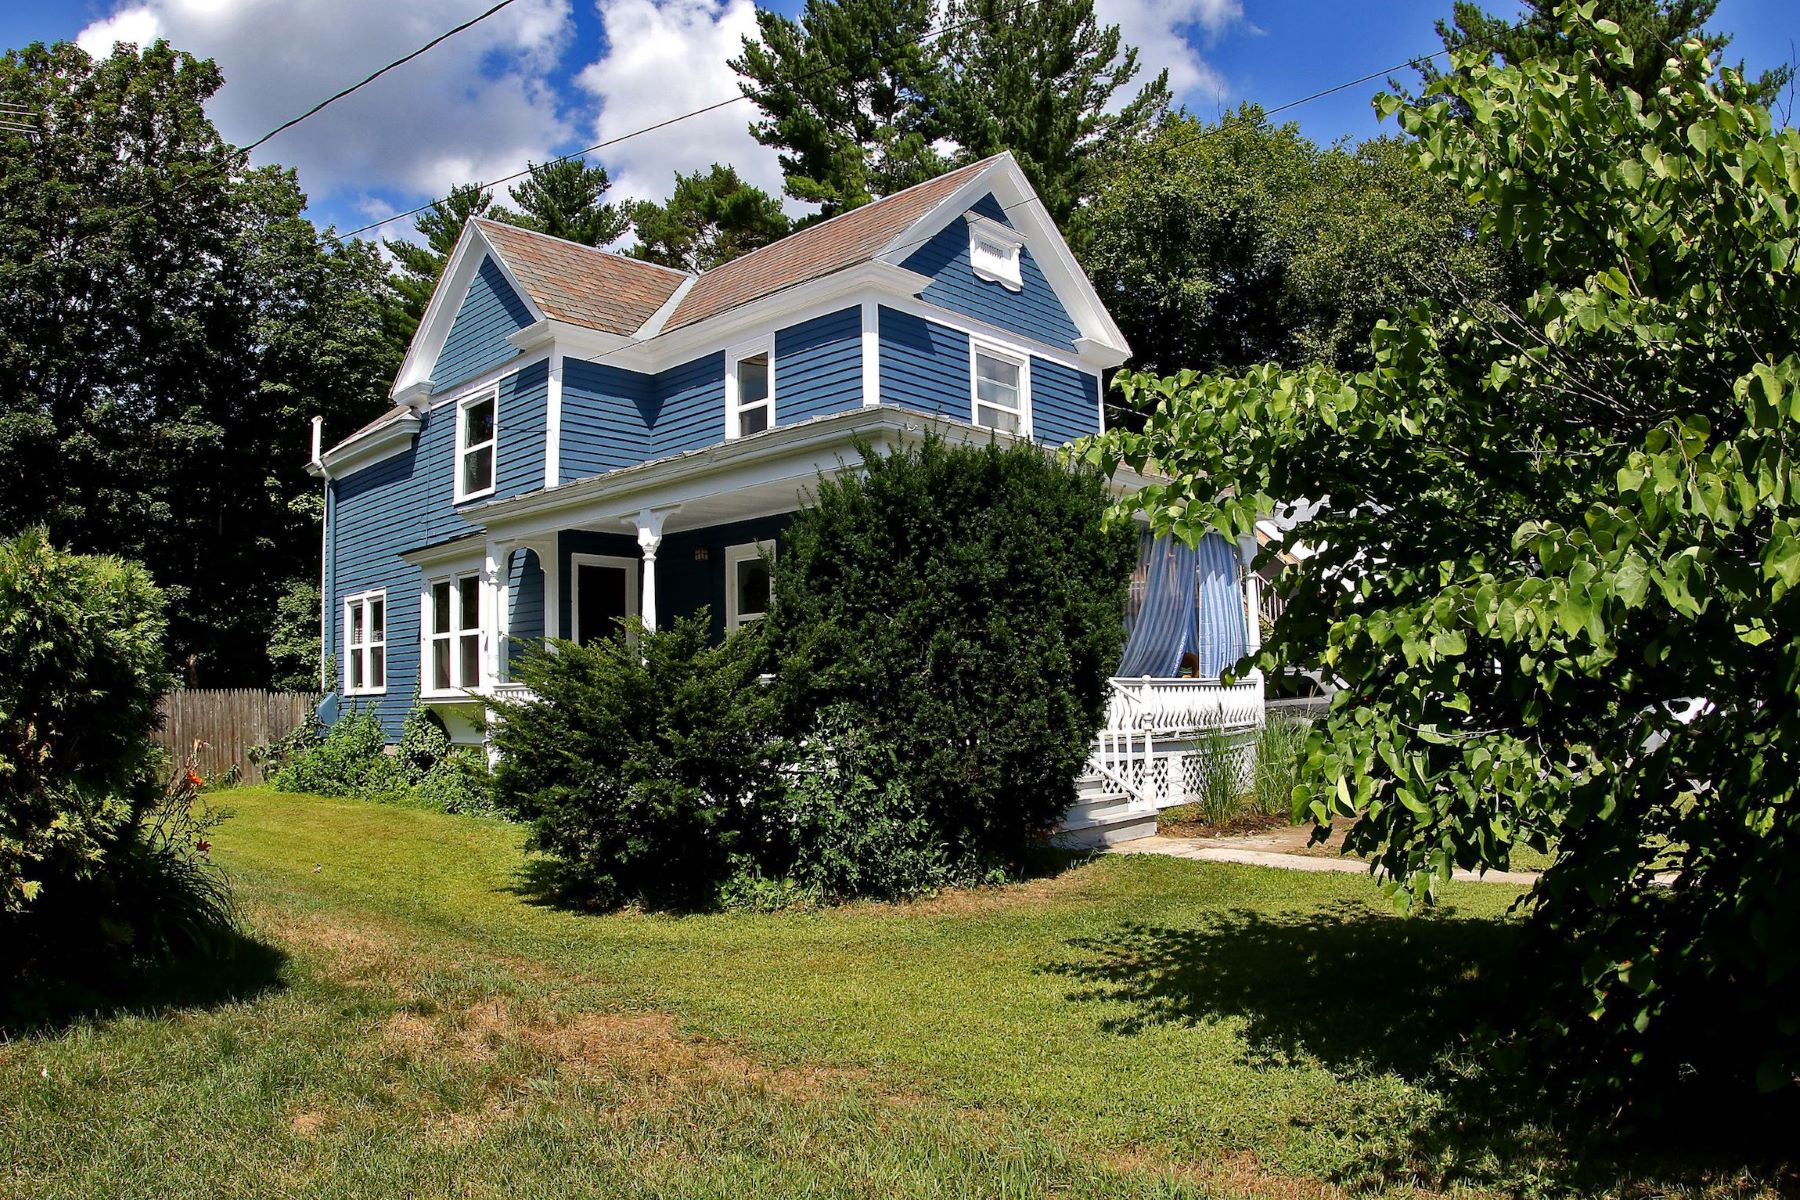 Single Family Homes for Sale at Charming Modern Colonial 265 Broadway Fort Edward, New York 12828 United States